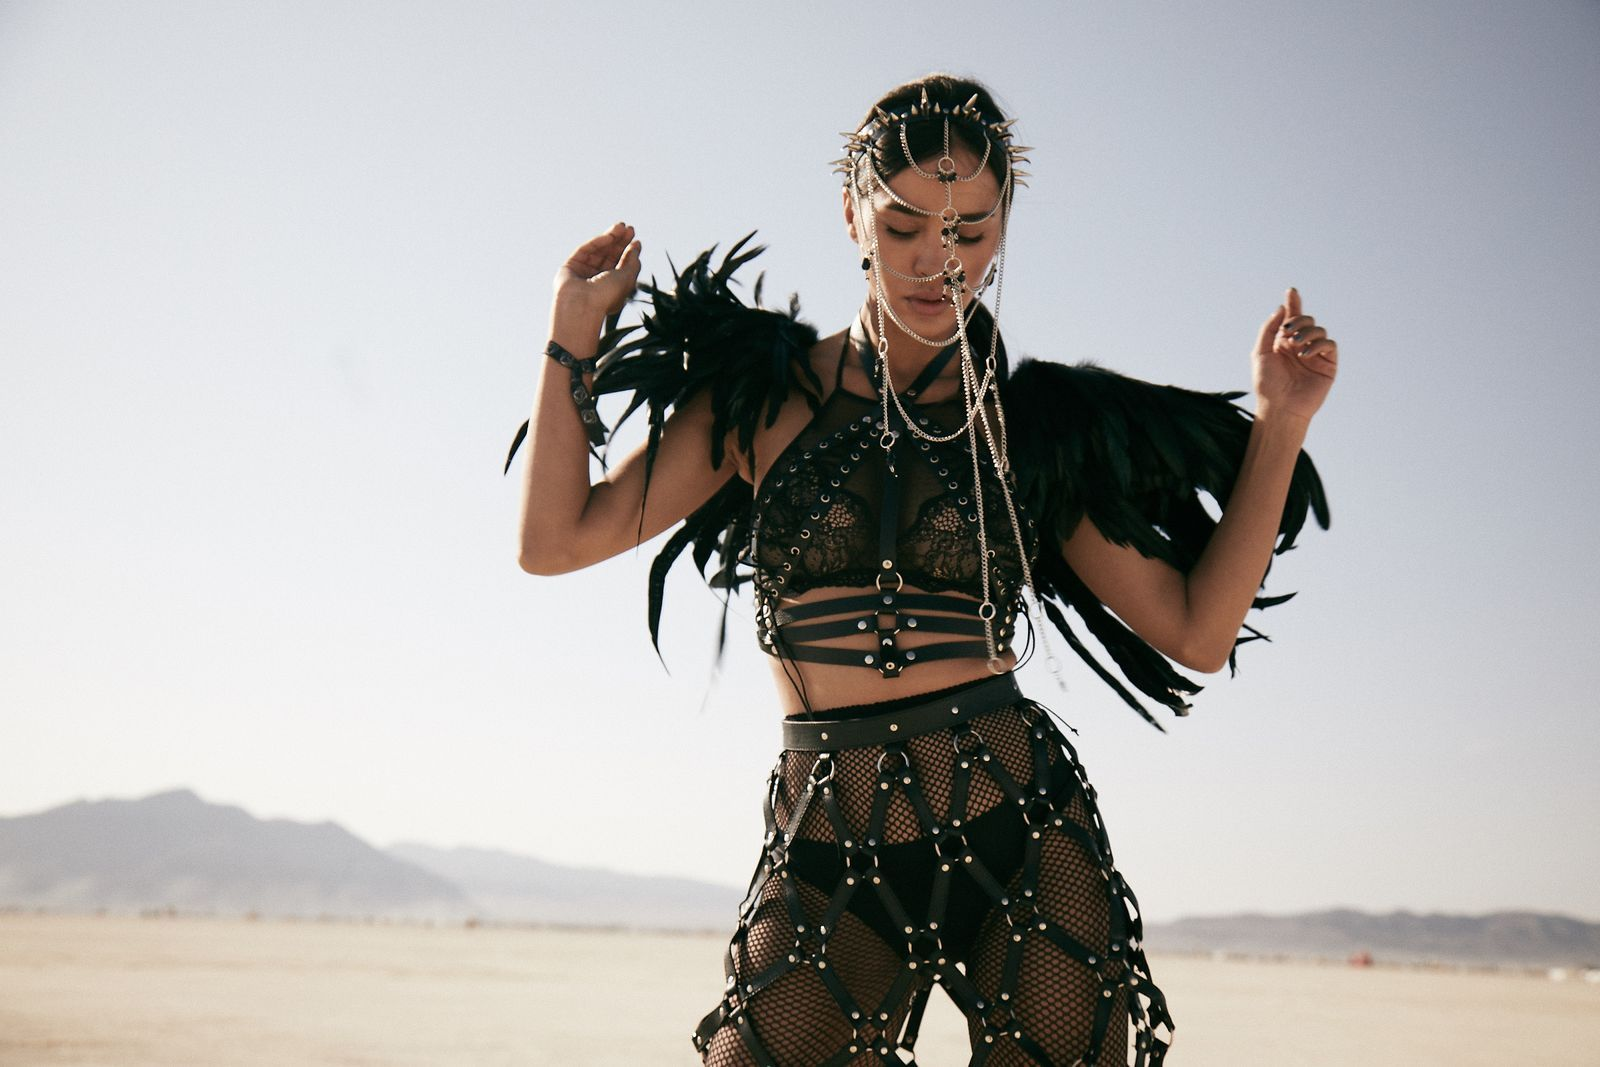 The Cool and Creative Costumes Seen at Burning Man This